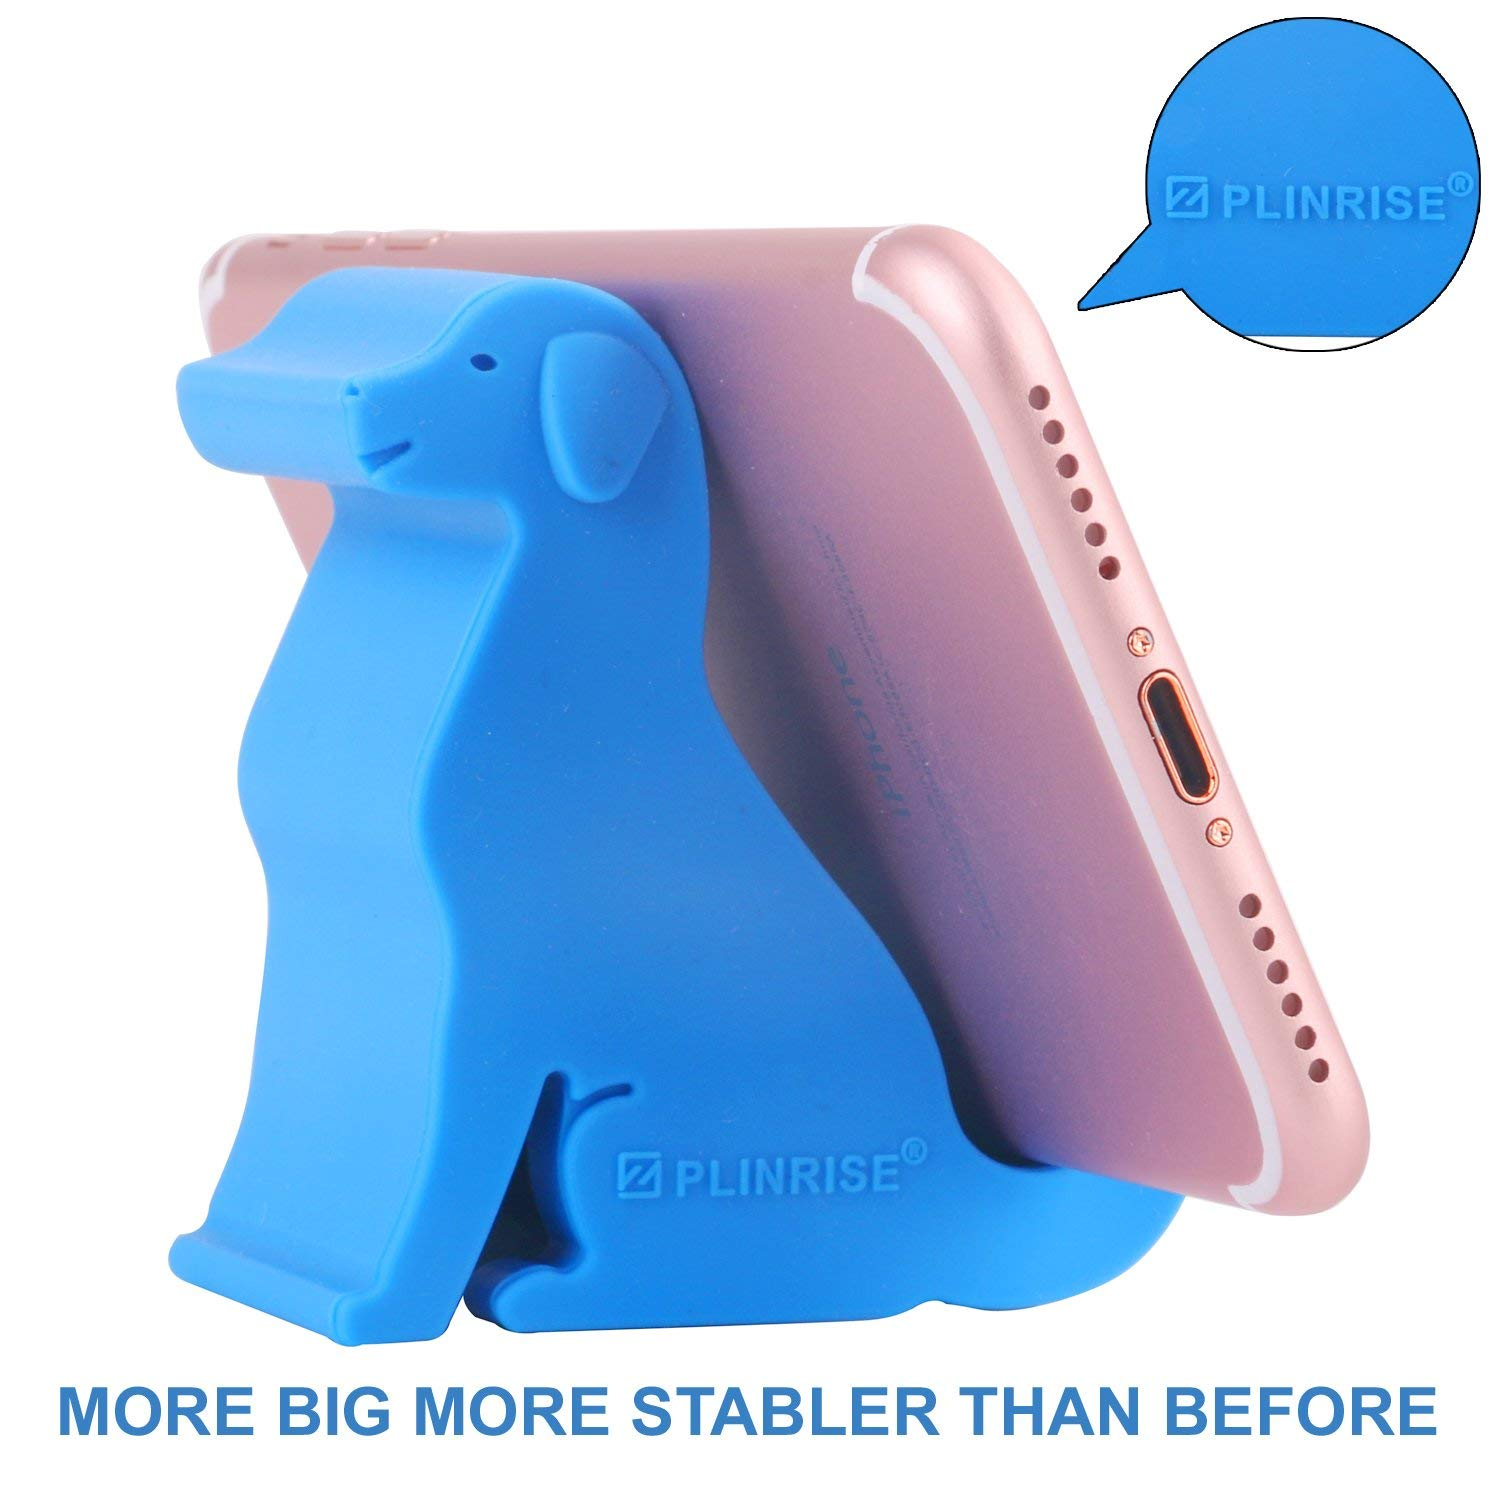 Z Plinrise Mini Puppy Dog Shape Cute Cell Phone Stand Material Of Silica Gel Size 2 4 X 6 1 For Office Desk Holder Black Nano